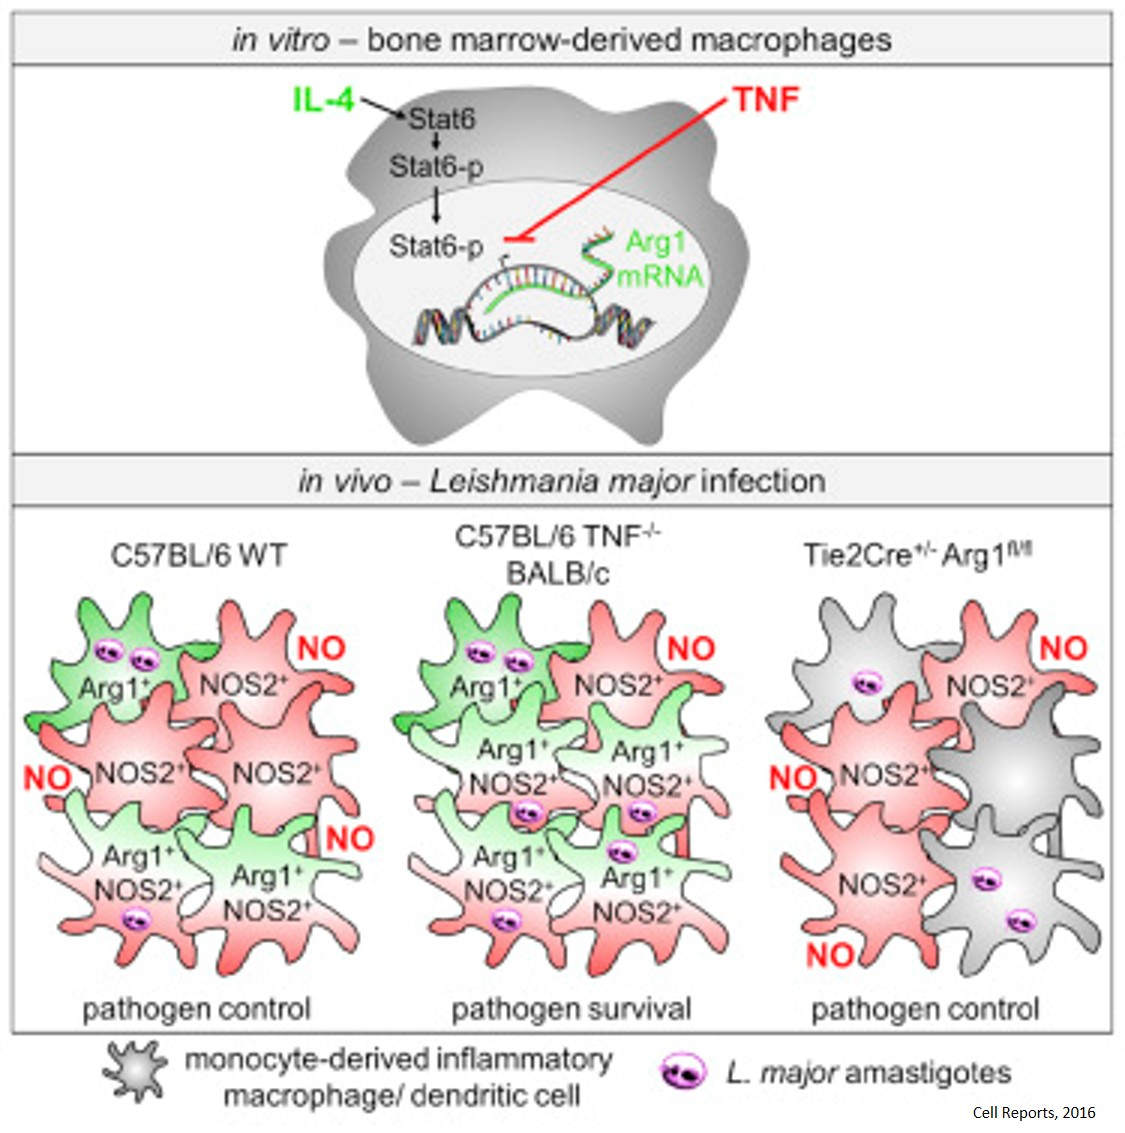 How tumor necrosis factor protects against infection